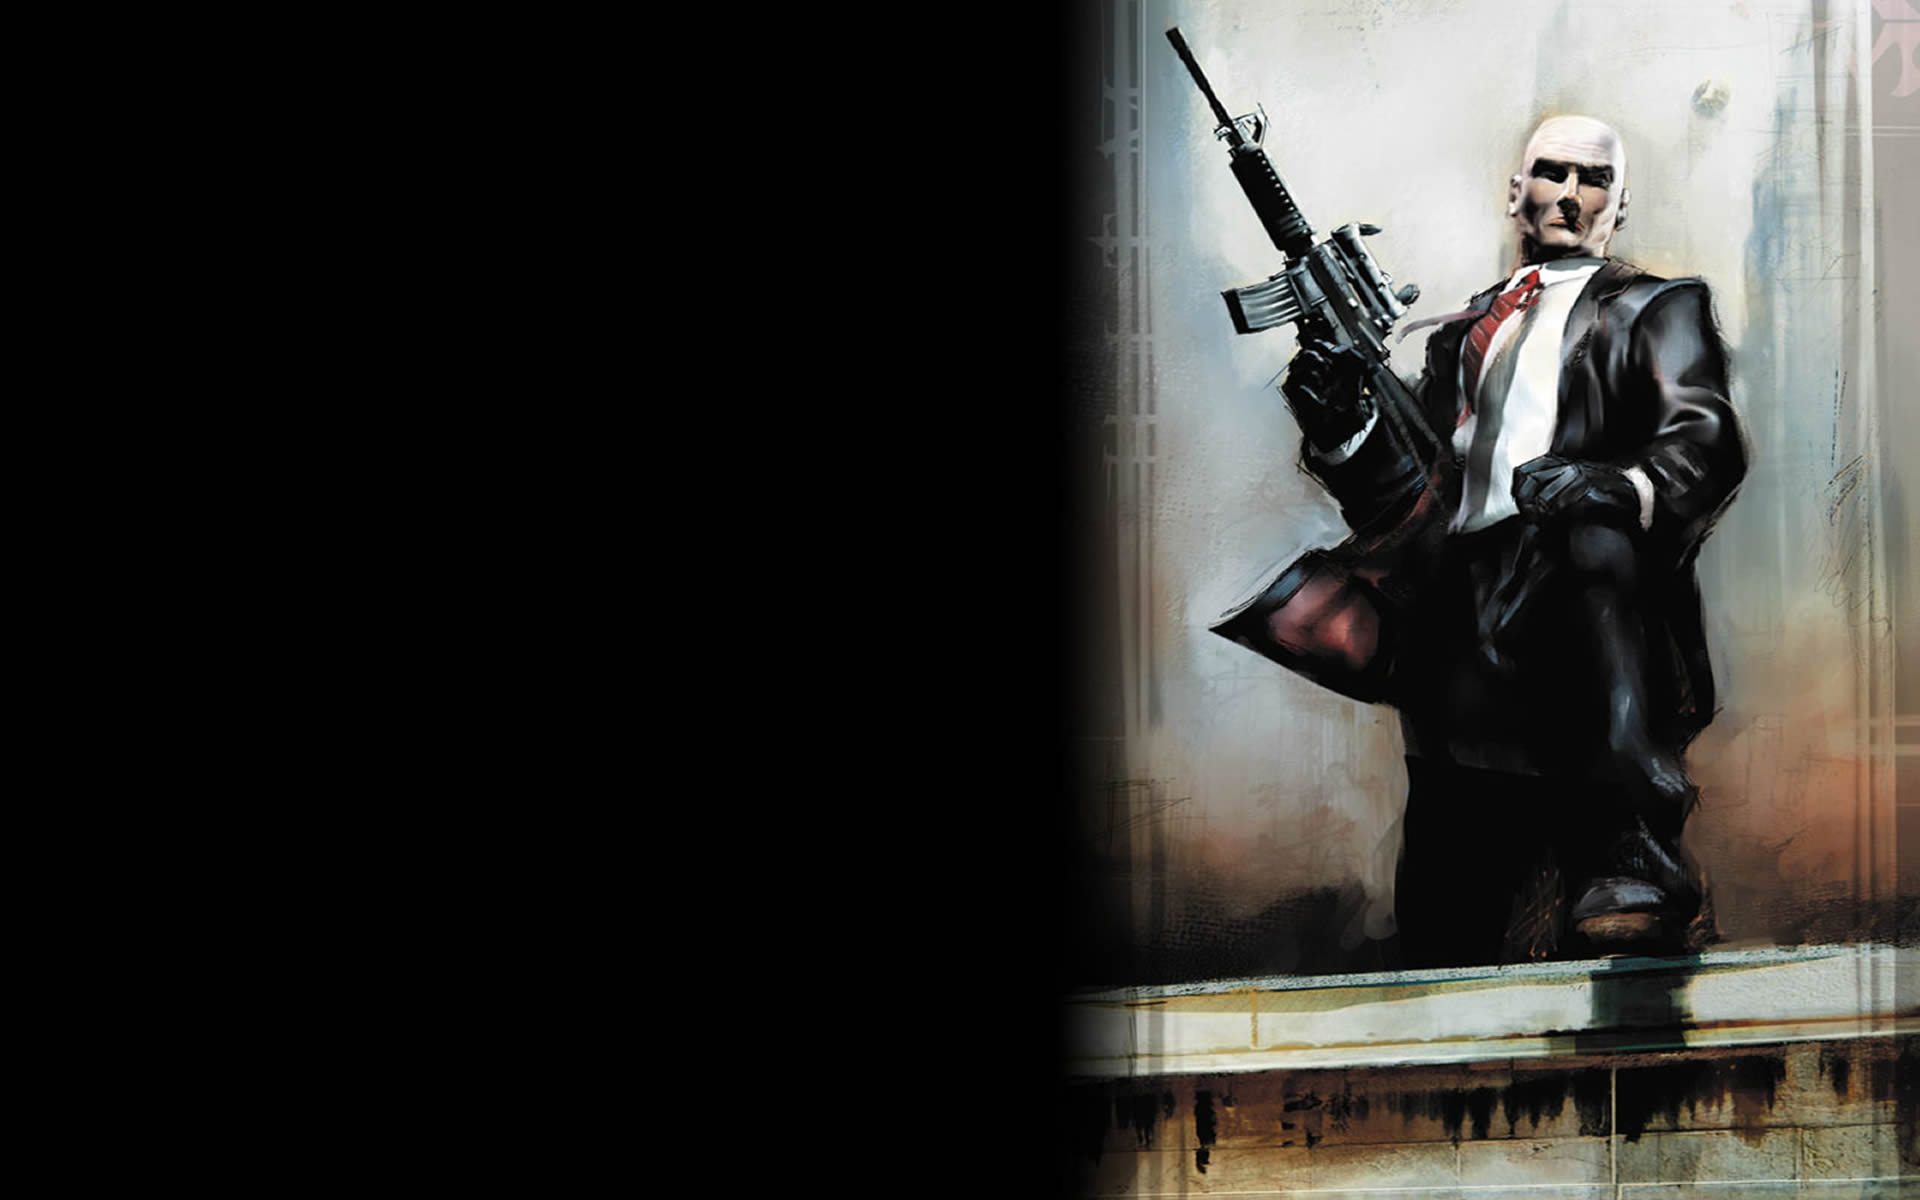 Agent 47 At Roof Ledge Hitman 2 Wallpaper